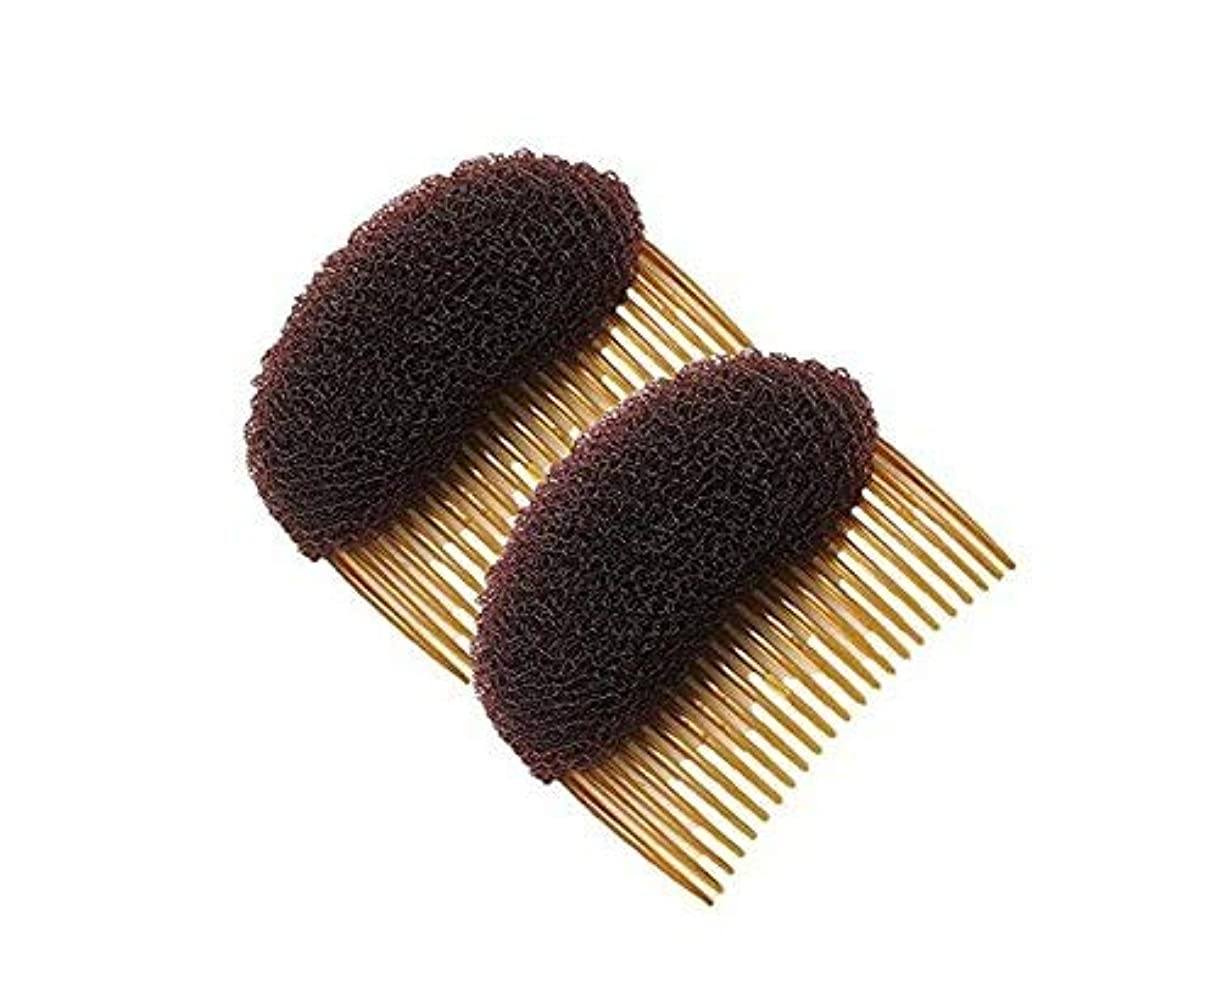 2PCS 23 Teeth Hair Fringe Volume Bump Up Inserts Tools-Hair Pin Hair Styling Clip Hair Charming Insert Do Beehive...